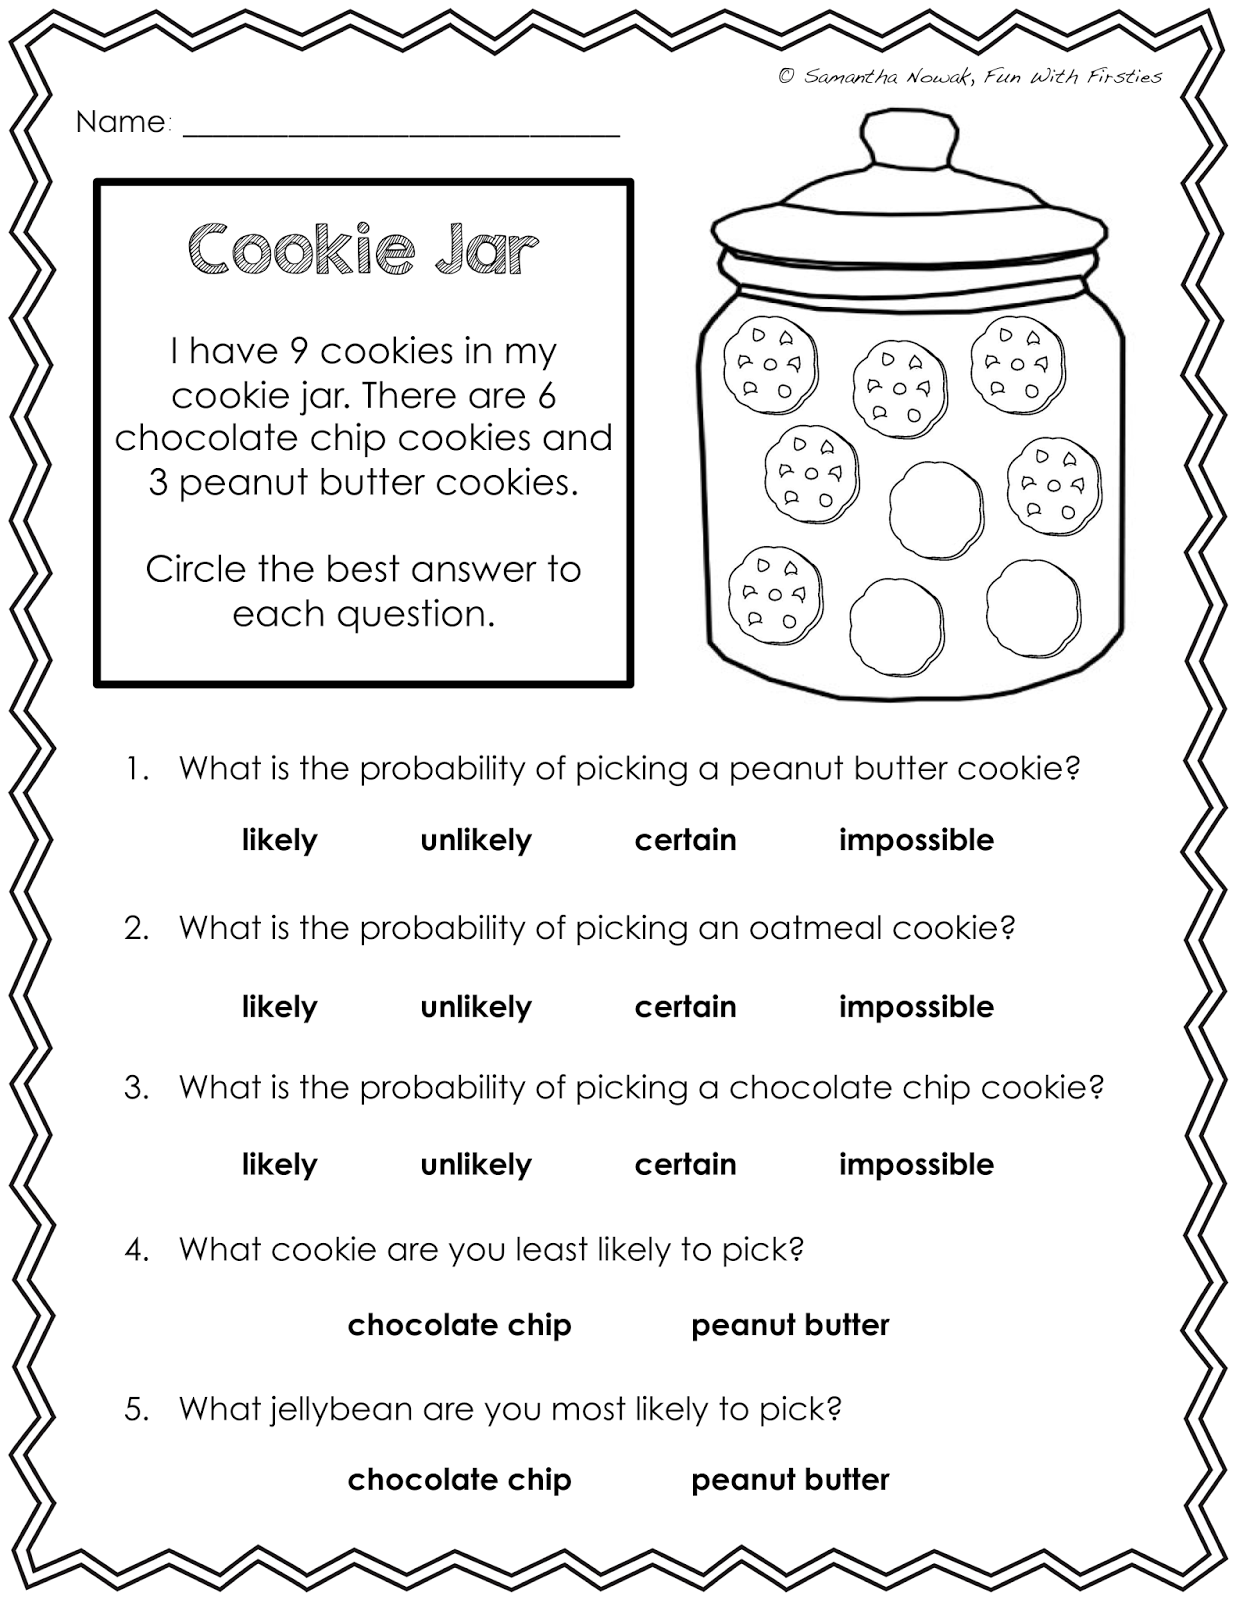 Our Probability Unit: worksheets, activities, lessons, and ...